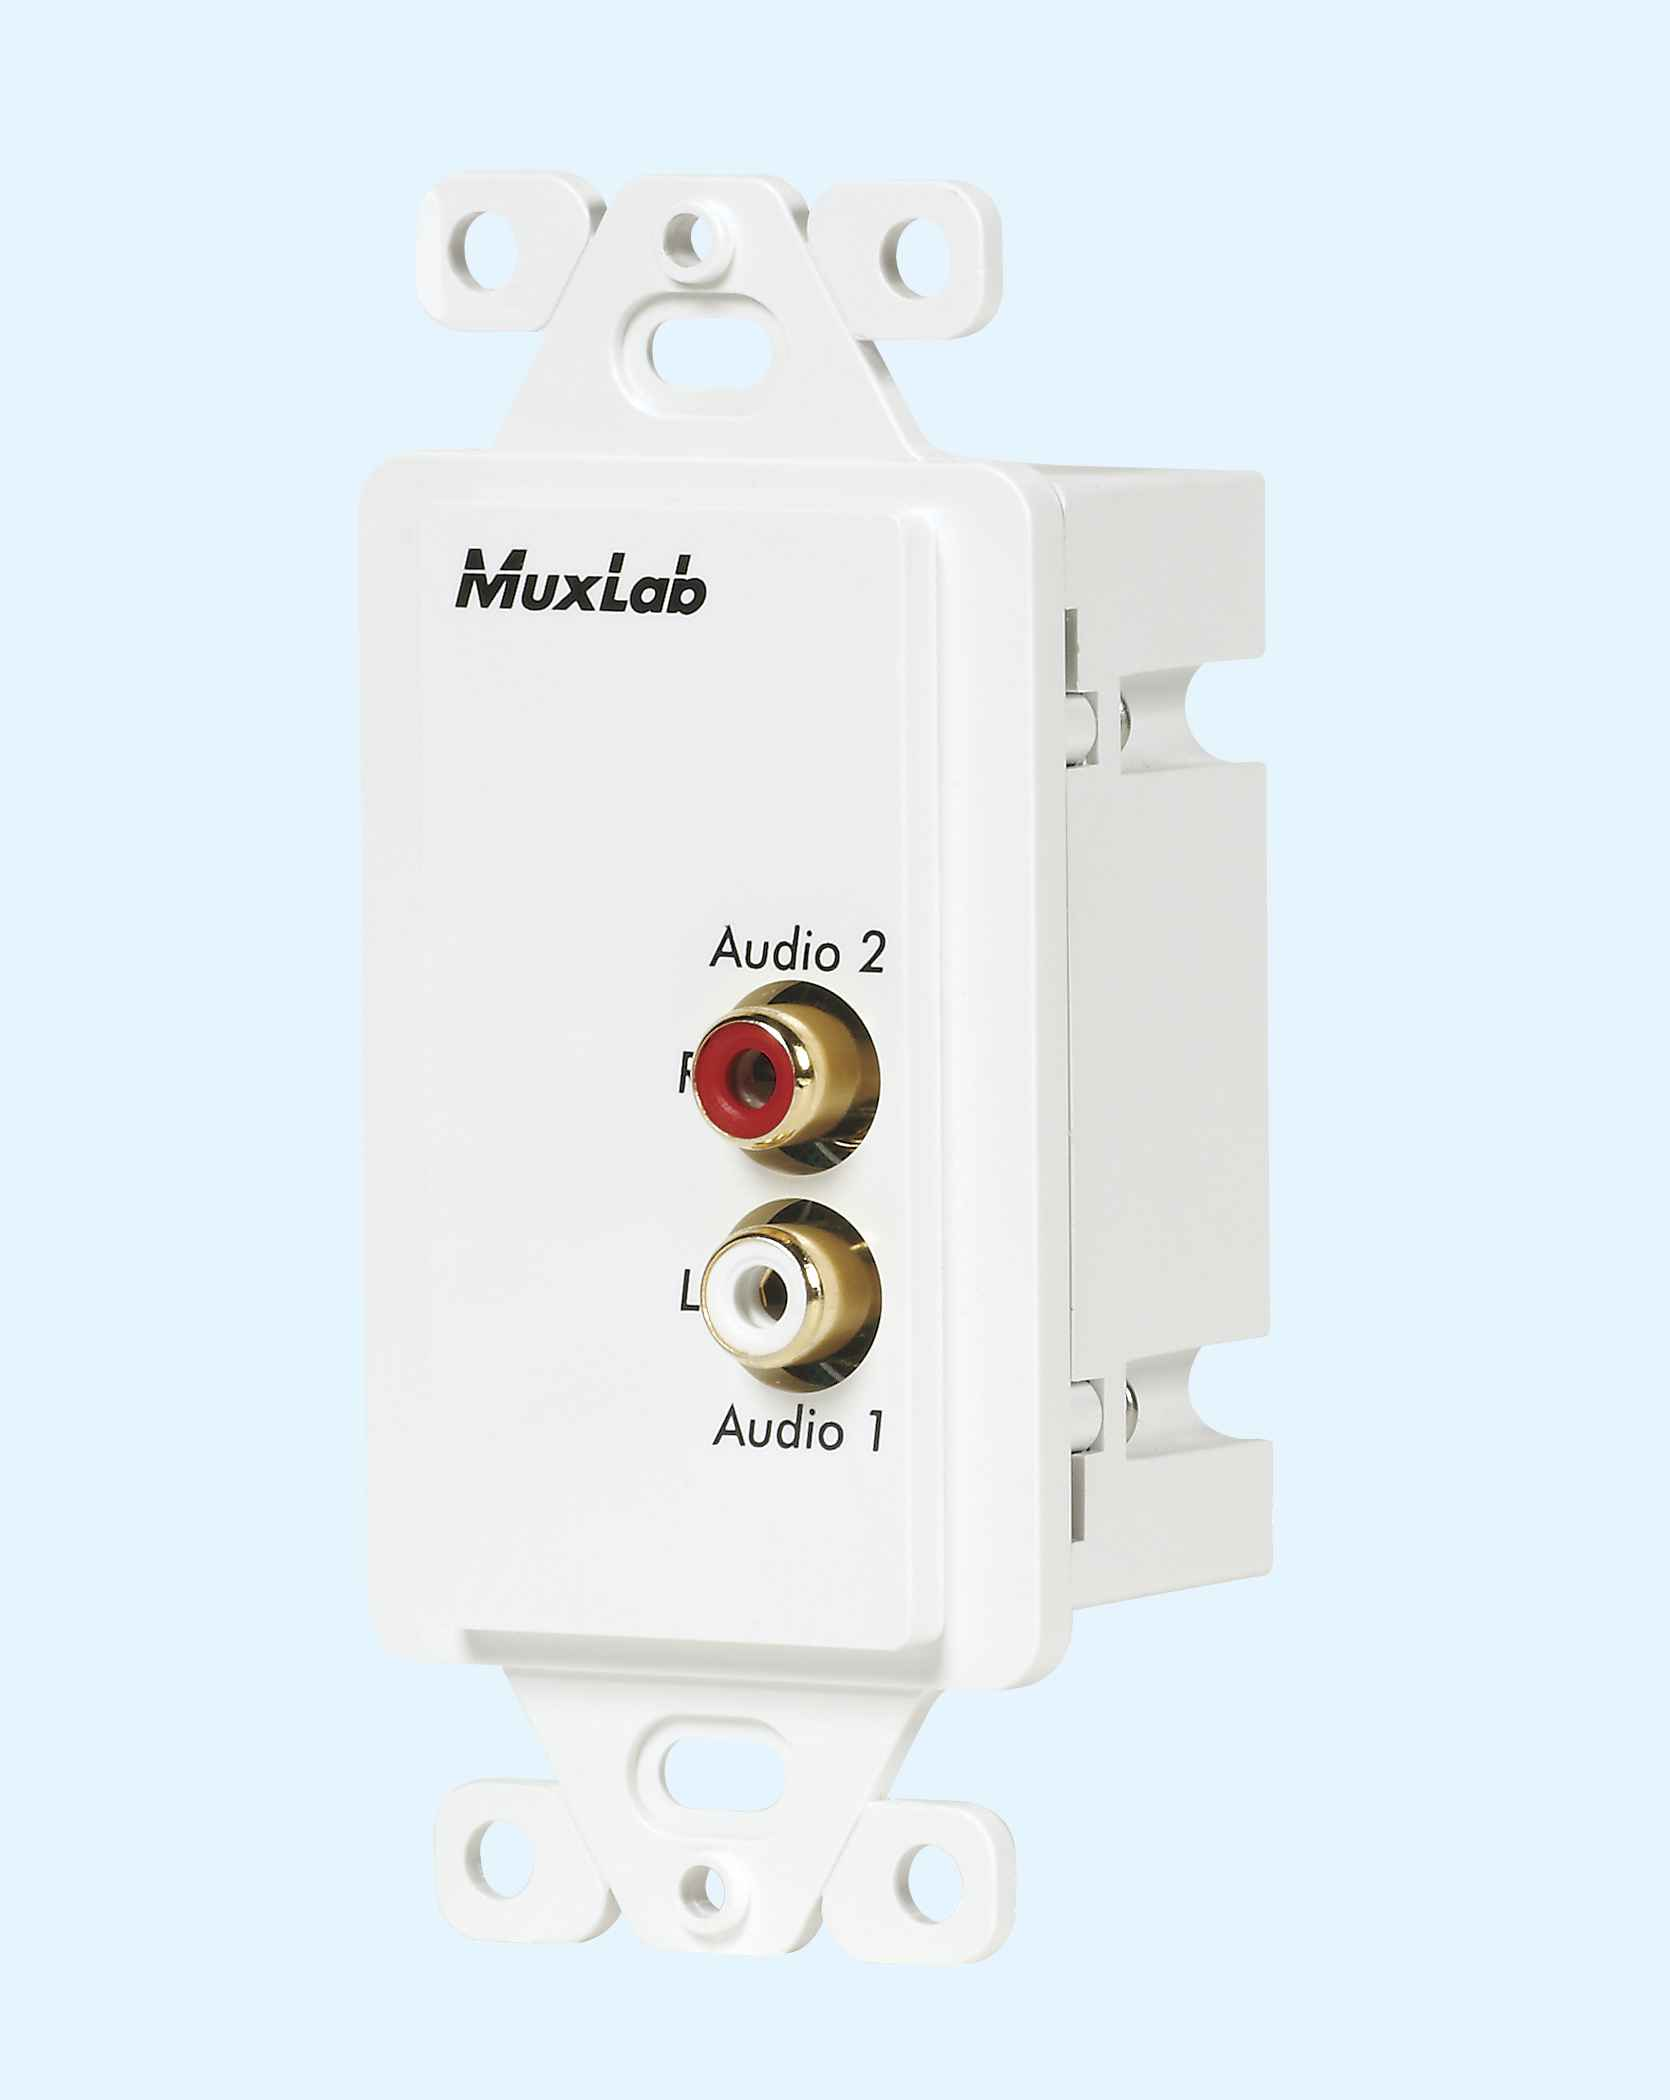 500028 Wp Us Muxlabs Stereo Audio Balun Wall Plate With L R Rca Details About 1 X 35mm Female To Wiring Block Keystone Jack